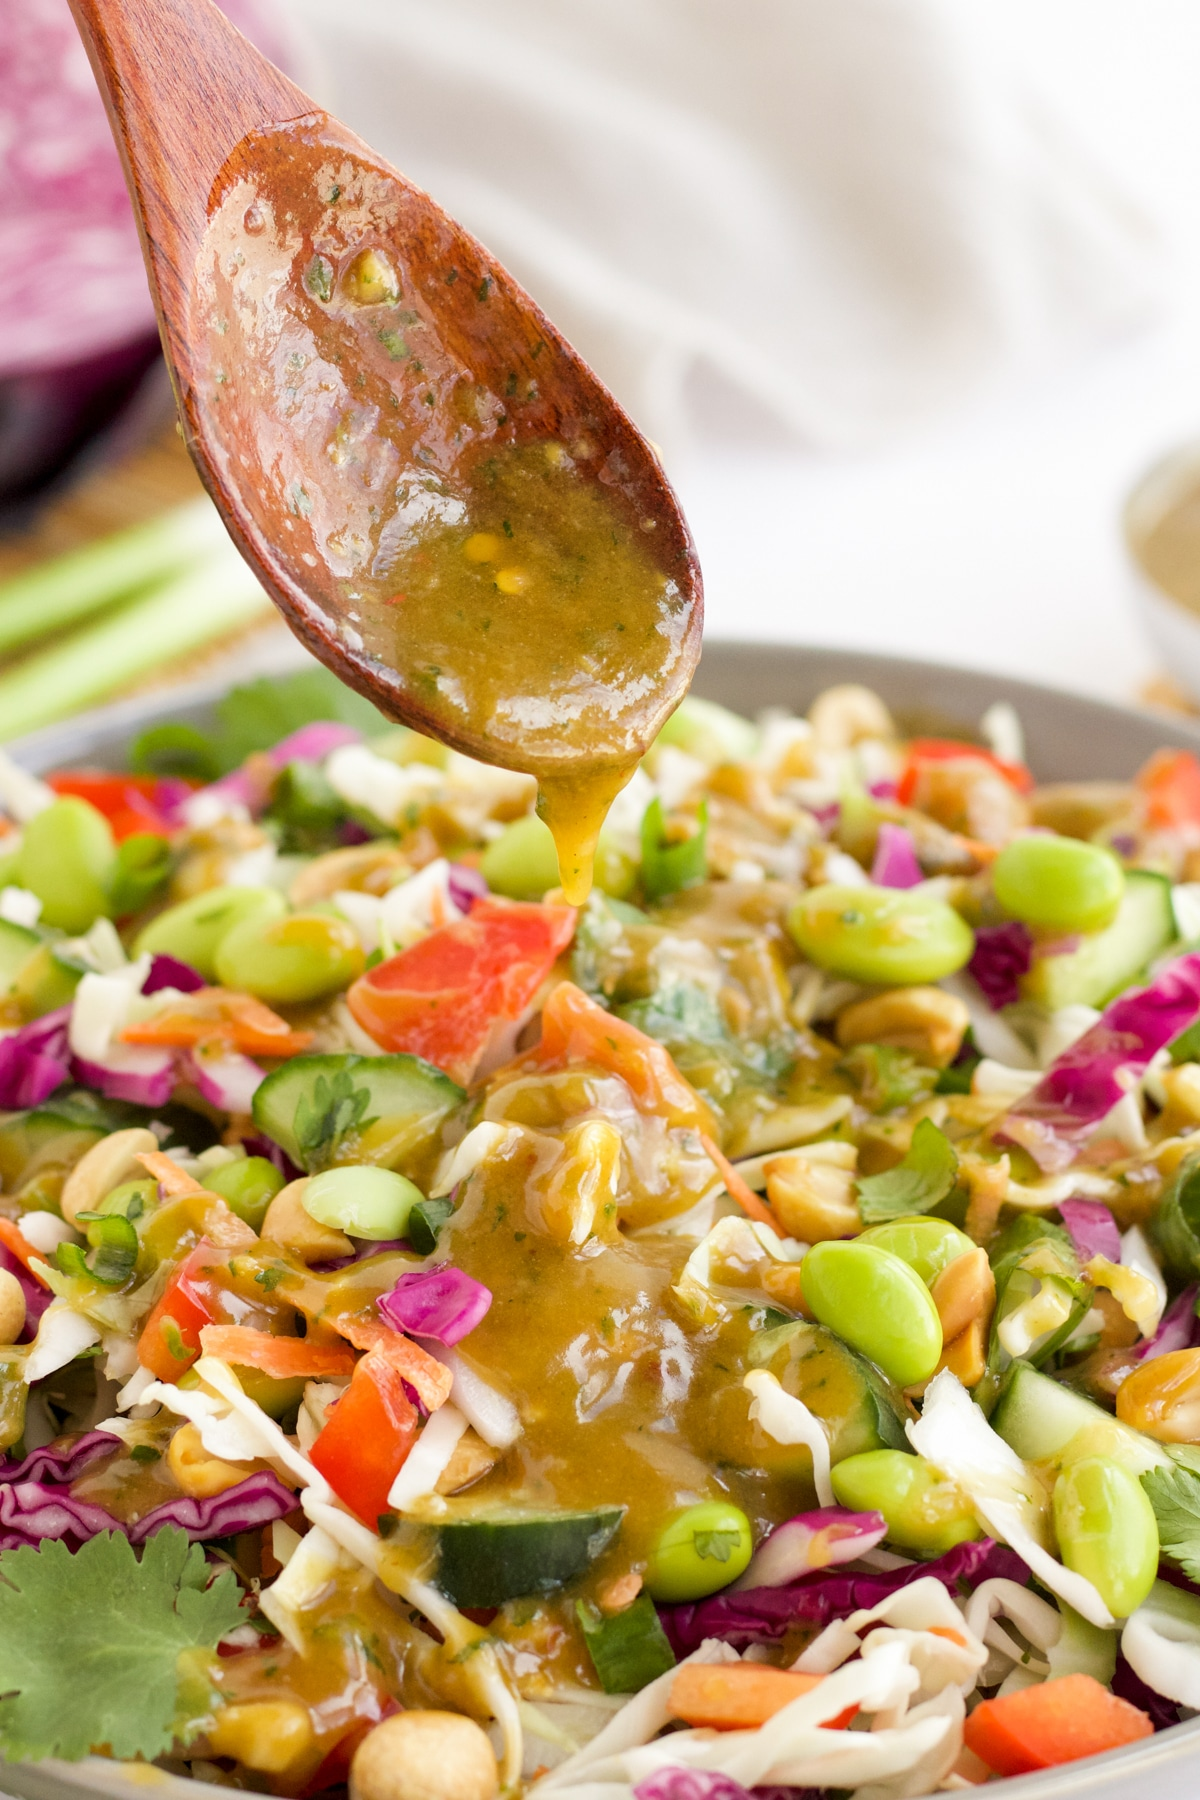 Creamy peanut dressing being drizzled onto a thai salad.